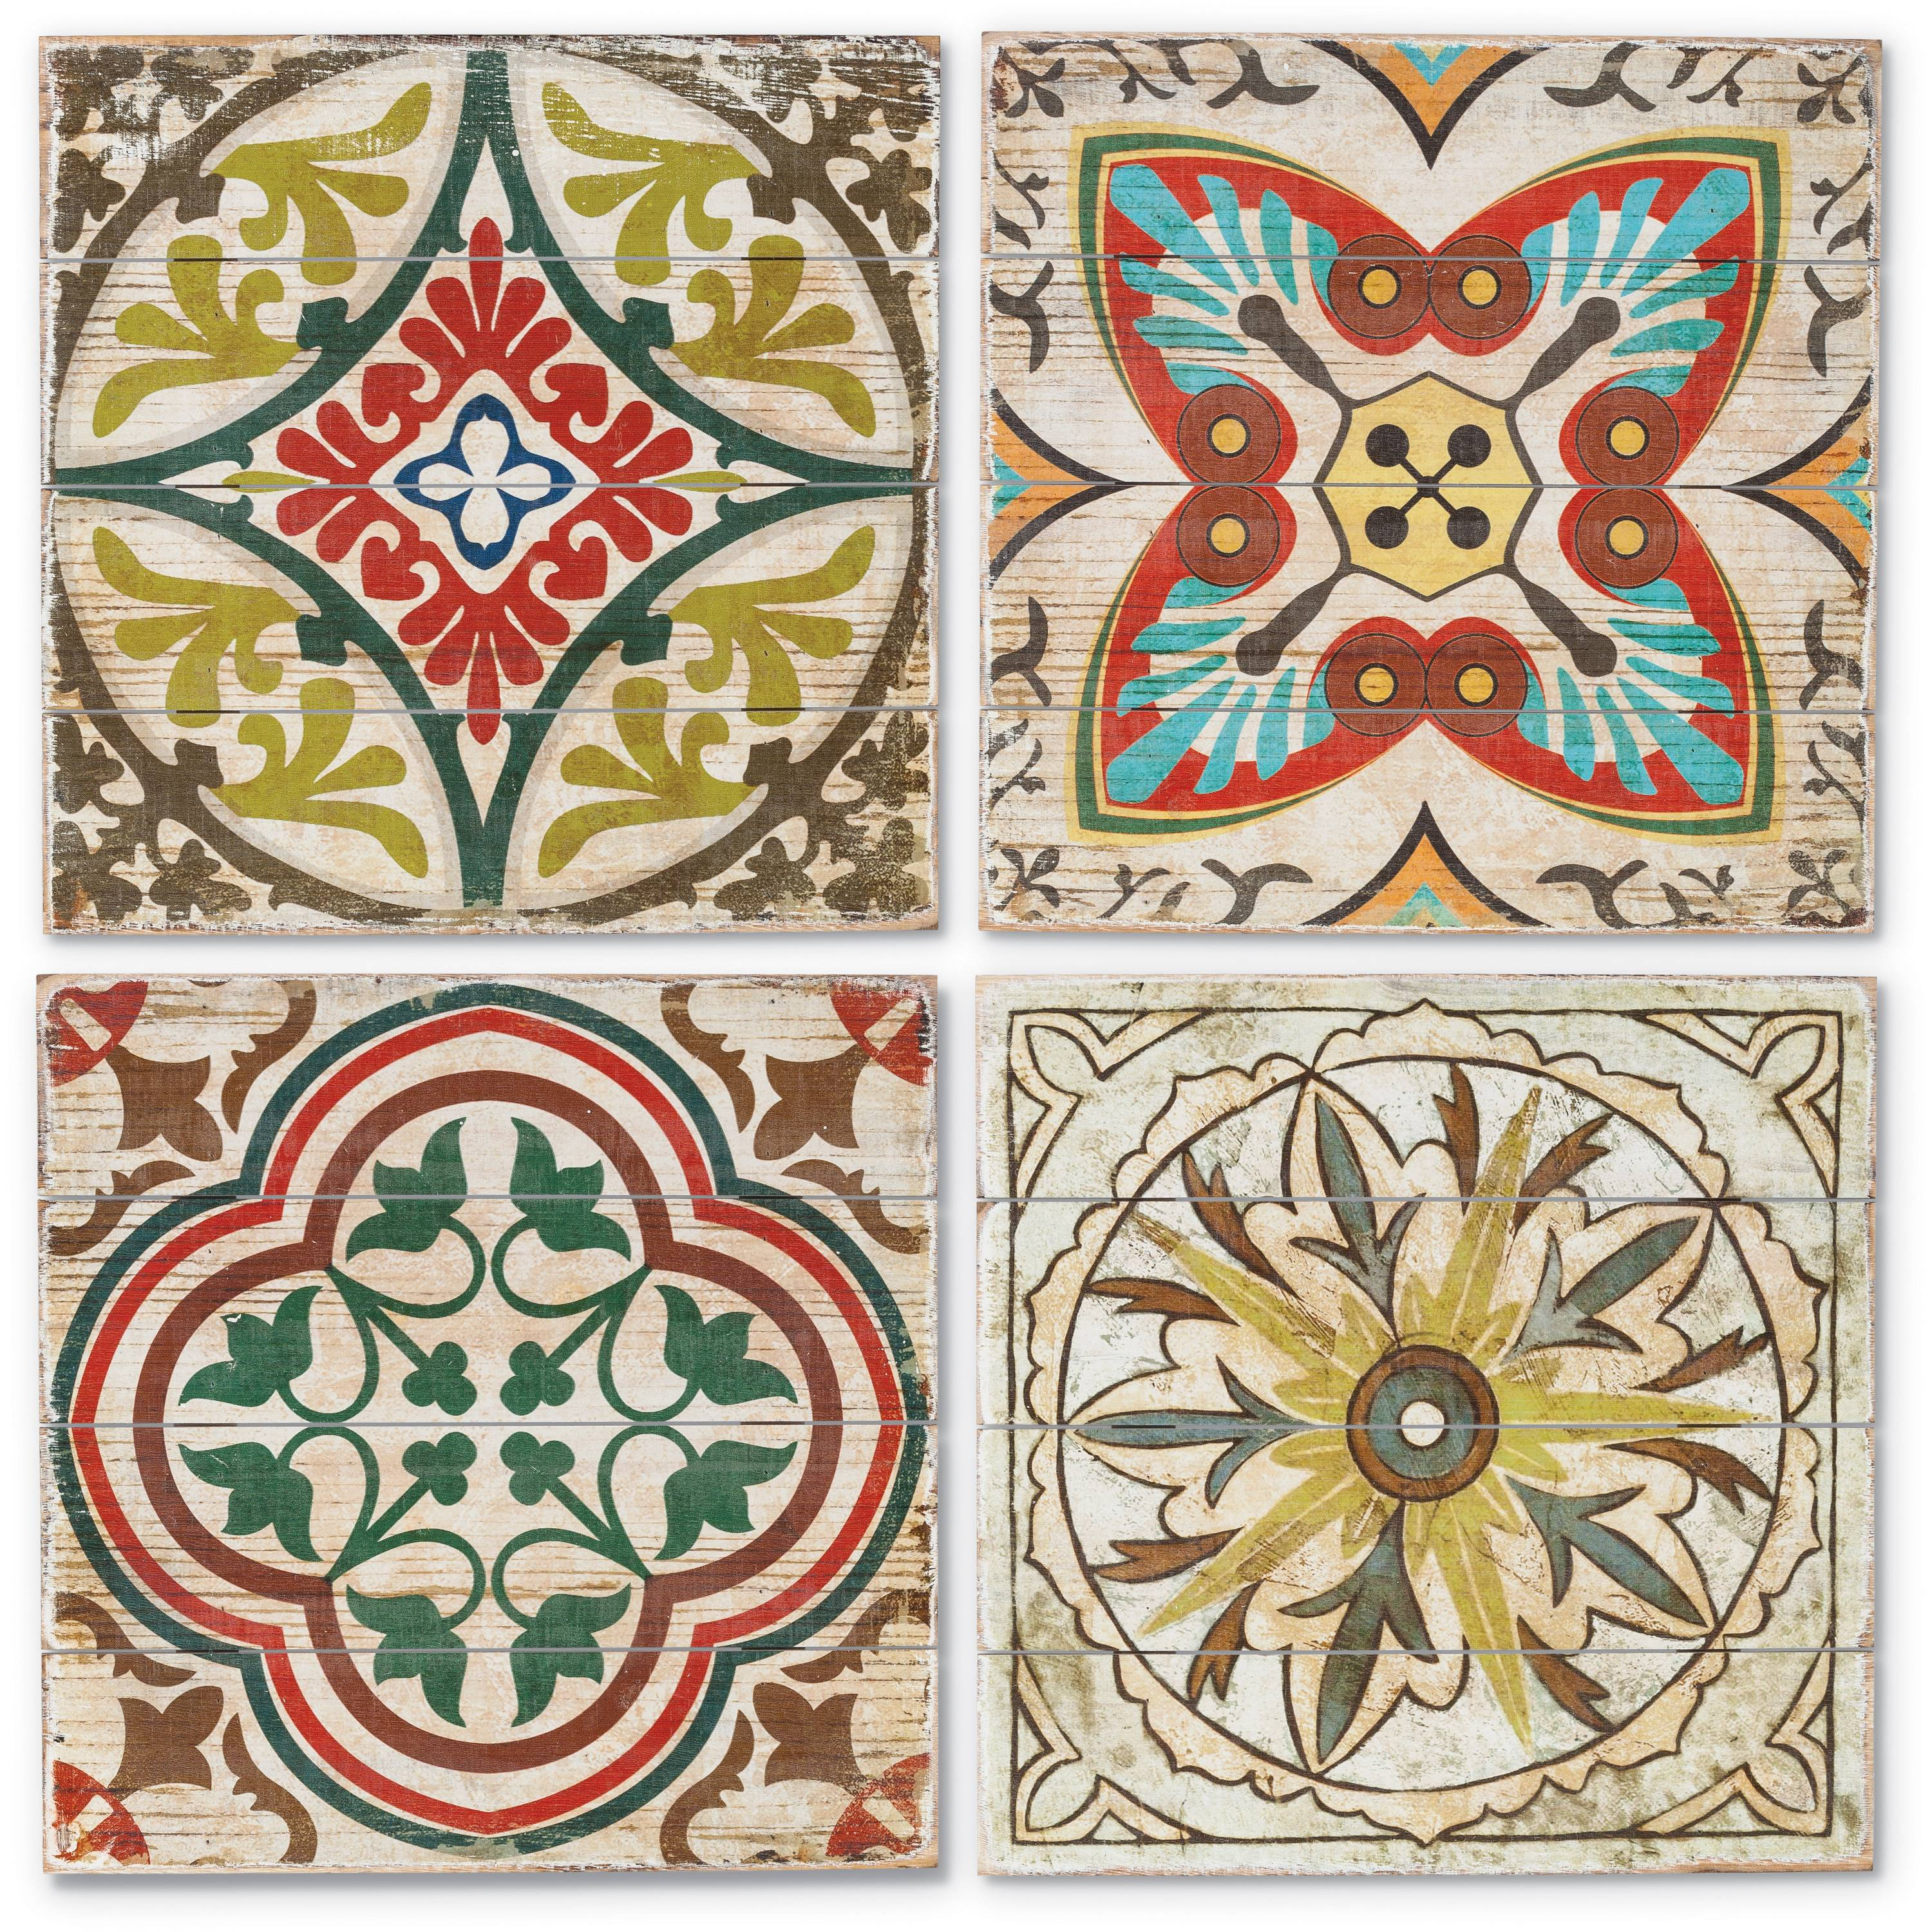 15.88-Inch Square Wall Art Tiles in Multi-Colored Bohemian Design on Fir Wood (Set of 4)